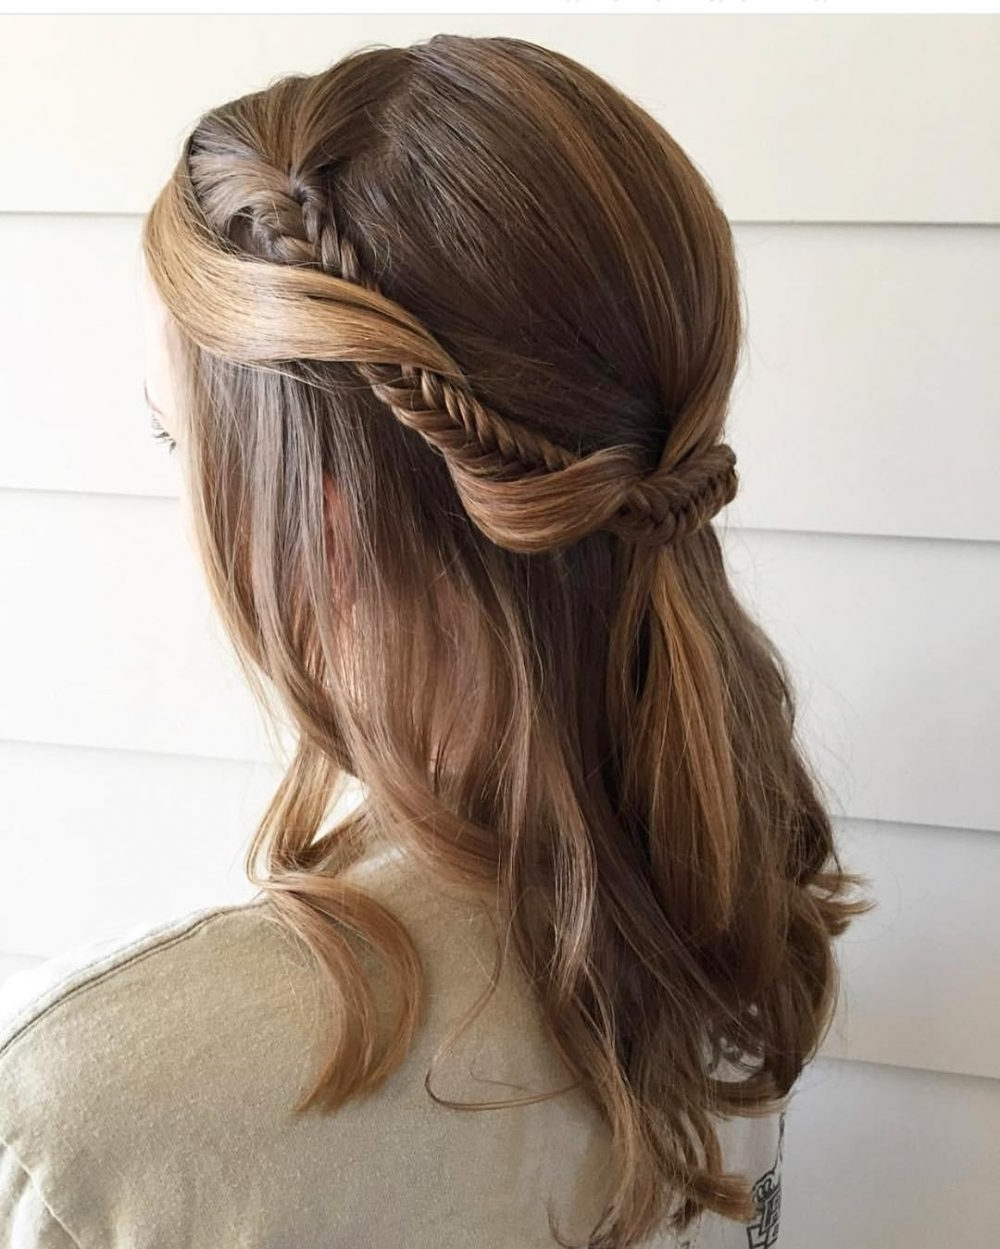 33 Ridiculously Easy Diy Chic Updos Throughout Dressy Updo Hairstyles (View 4 of 15)